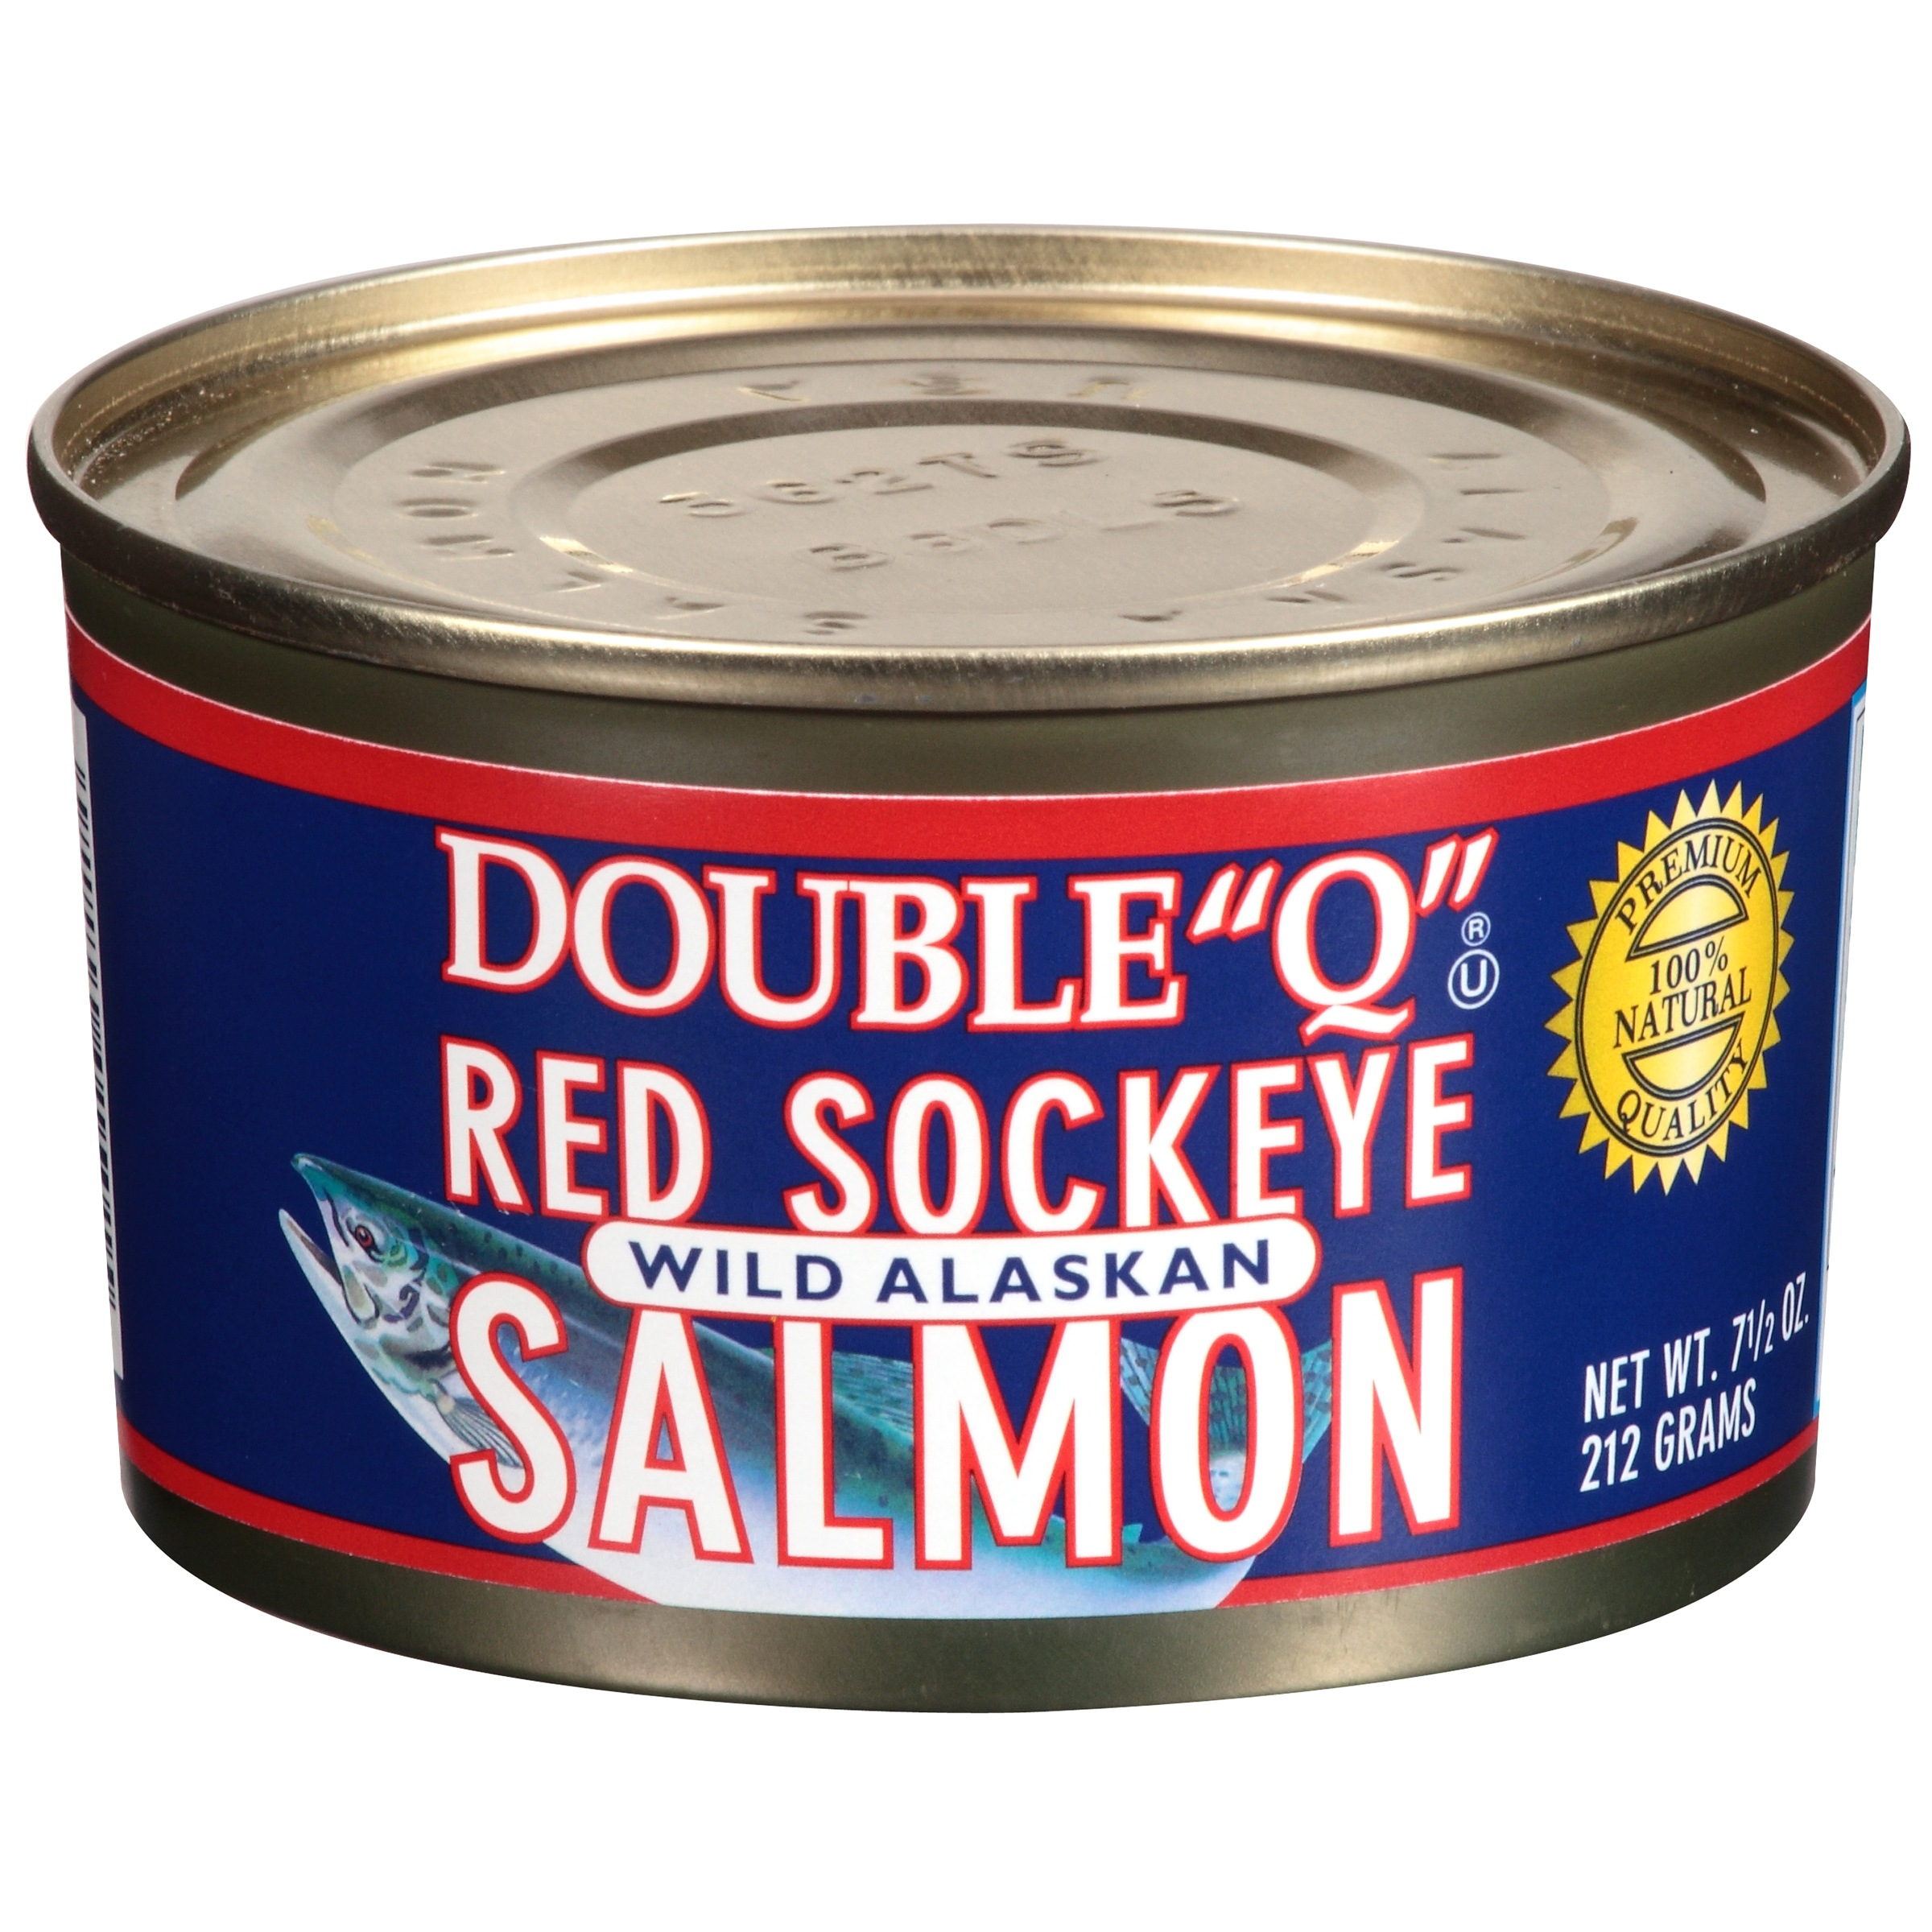 "Double ""Q"" Red Sockeye Wild Alaskan Salmon 7.5 oz Can by PeterPan® Seafood Inc."